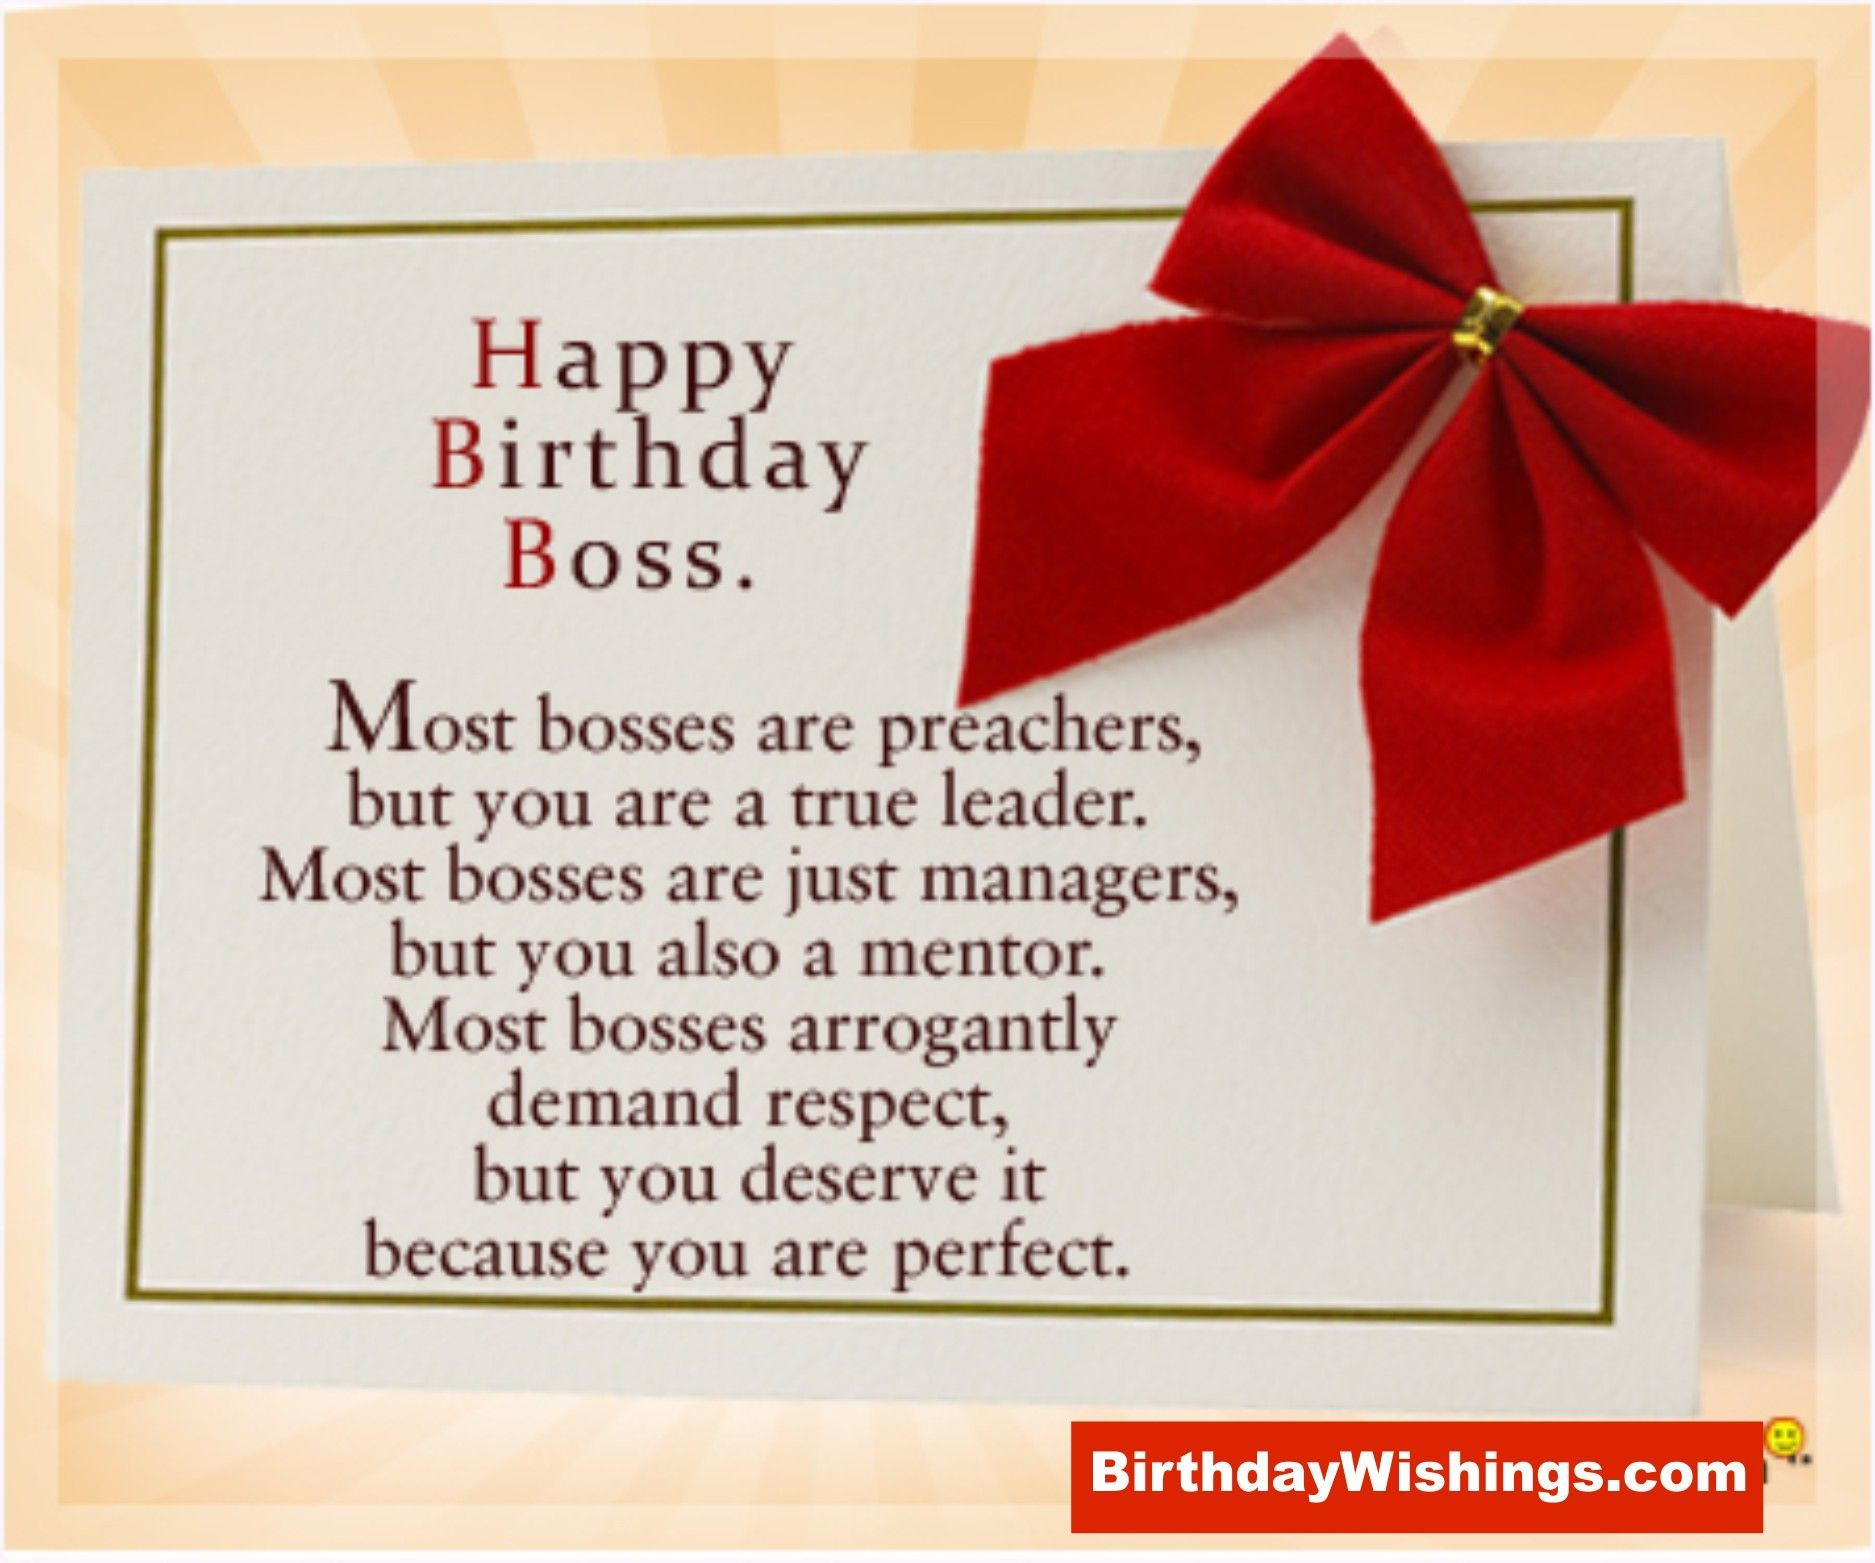 Happy Birthday Boss Quotes Check Out This Great Collection Of